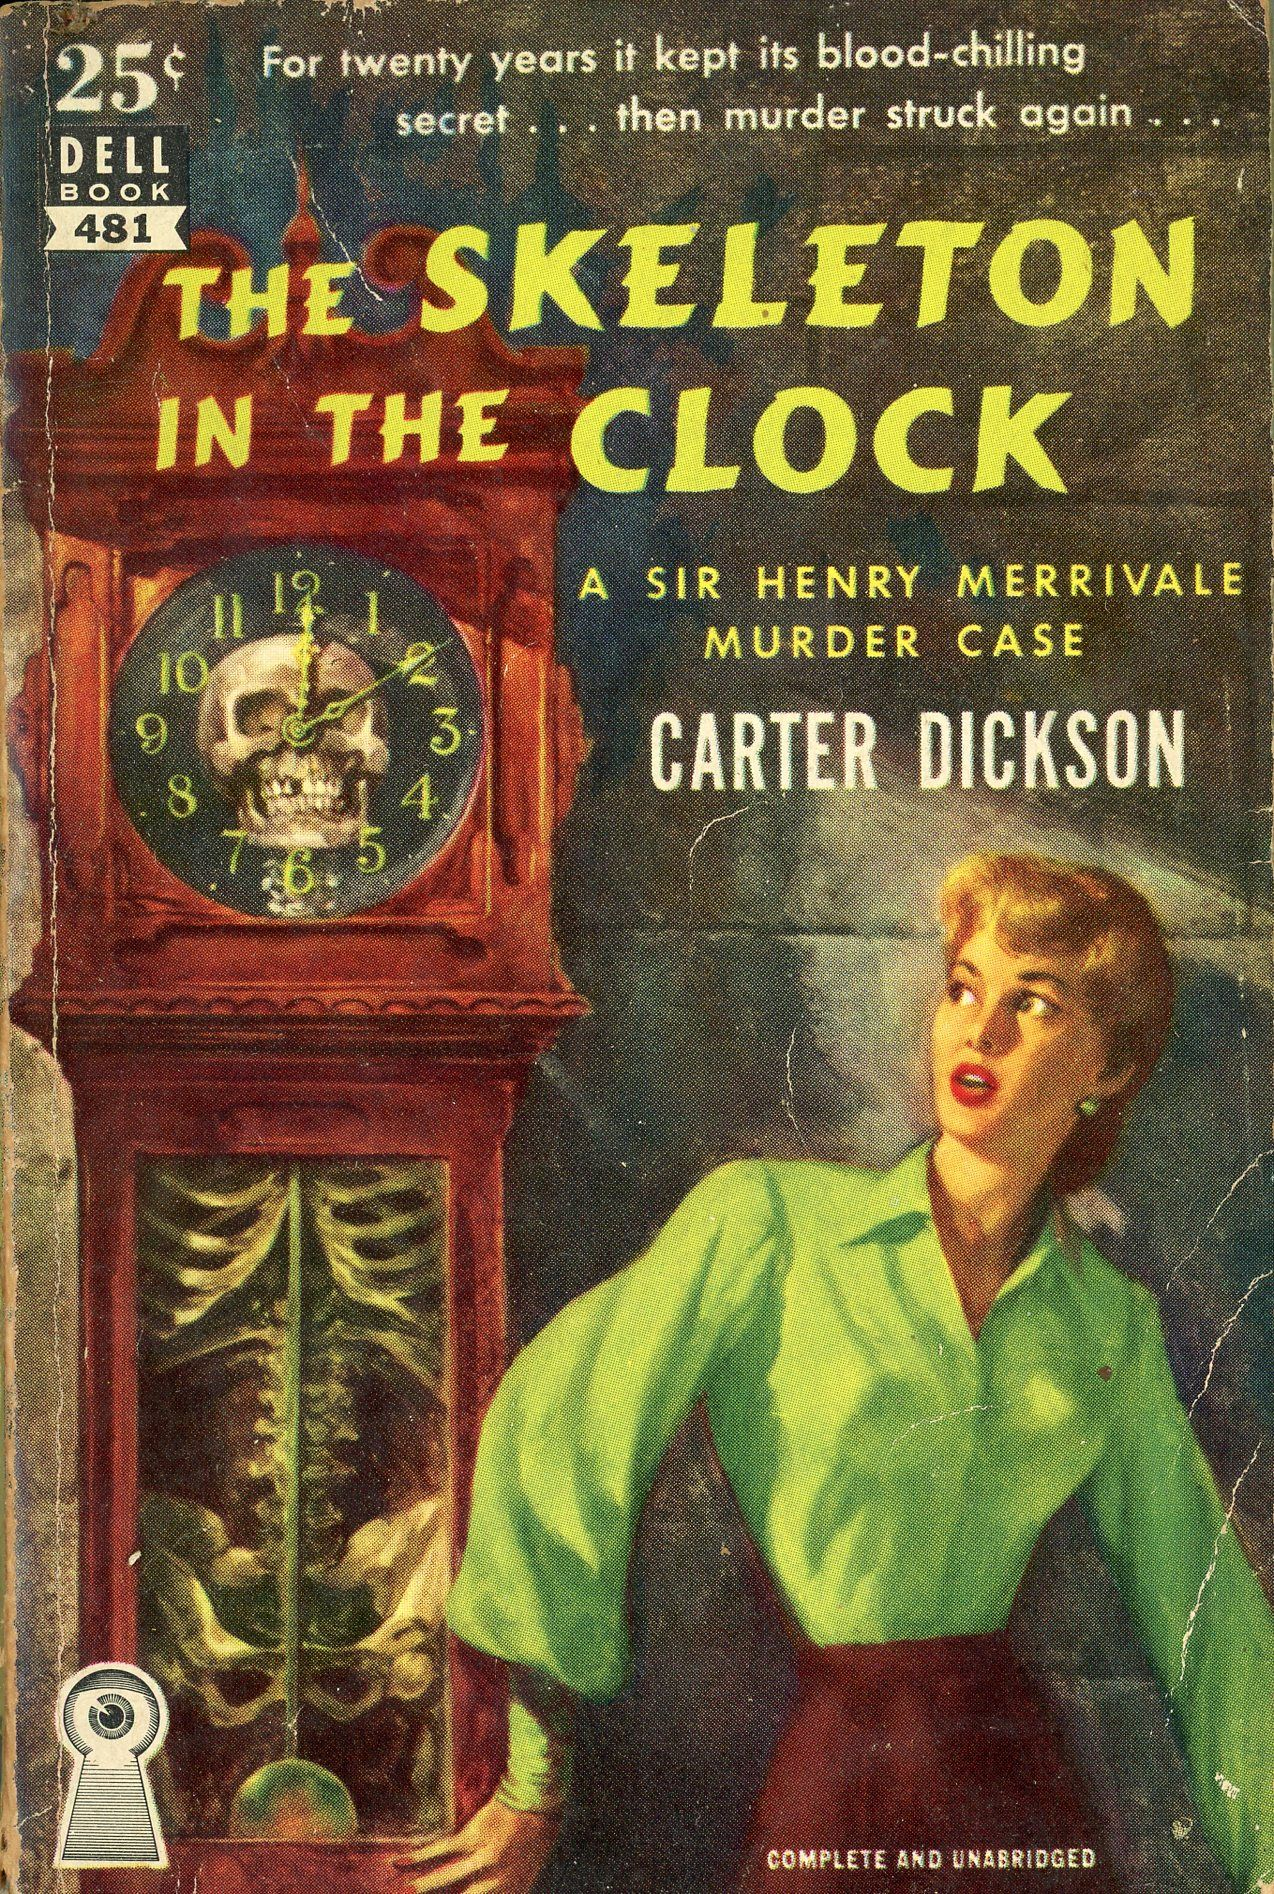 Image result for the skeleton in the clock